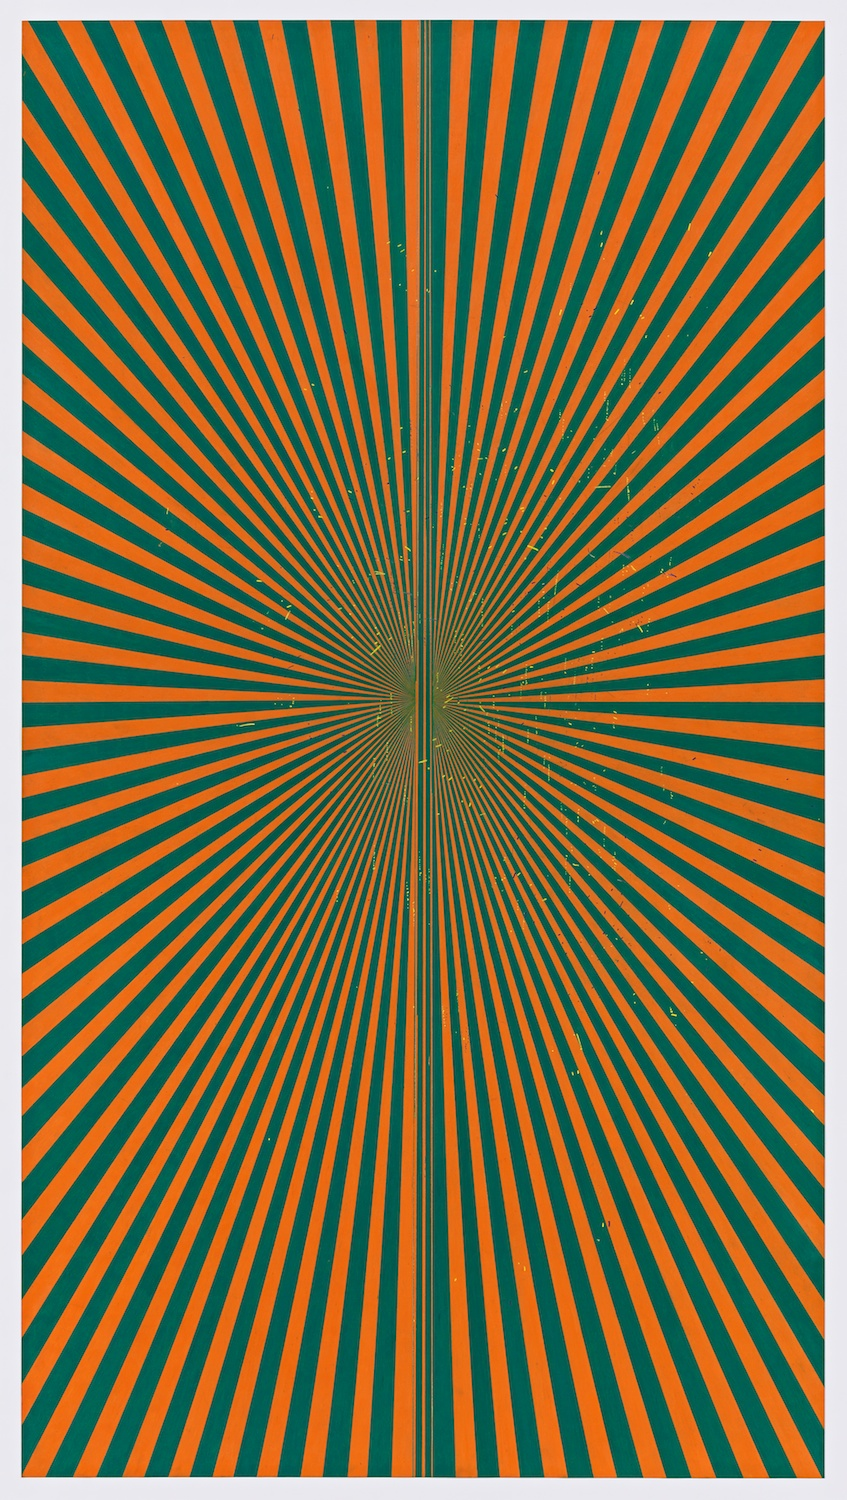 "Mark Grotjahn  Untitled (Orange and Grass Green Butterfly 45.12) 2013  Color pencil on paper   76"" x 42"" MG45.12"